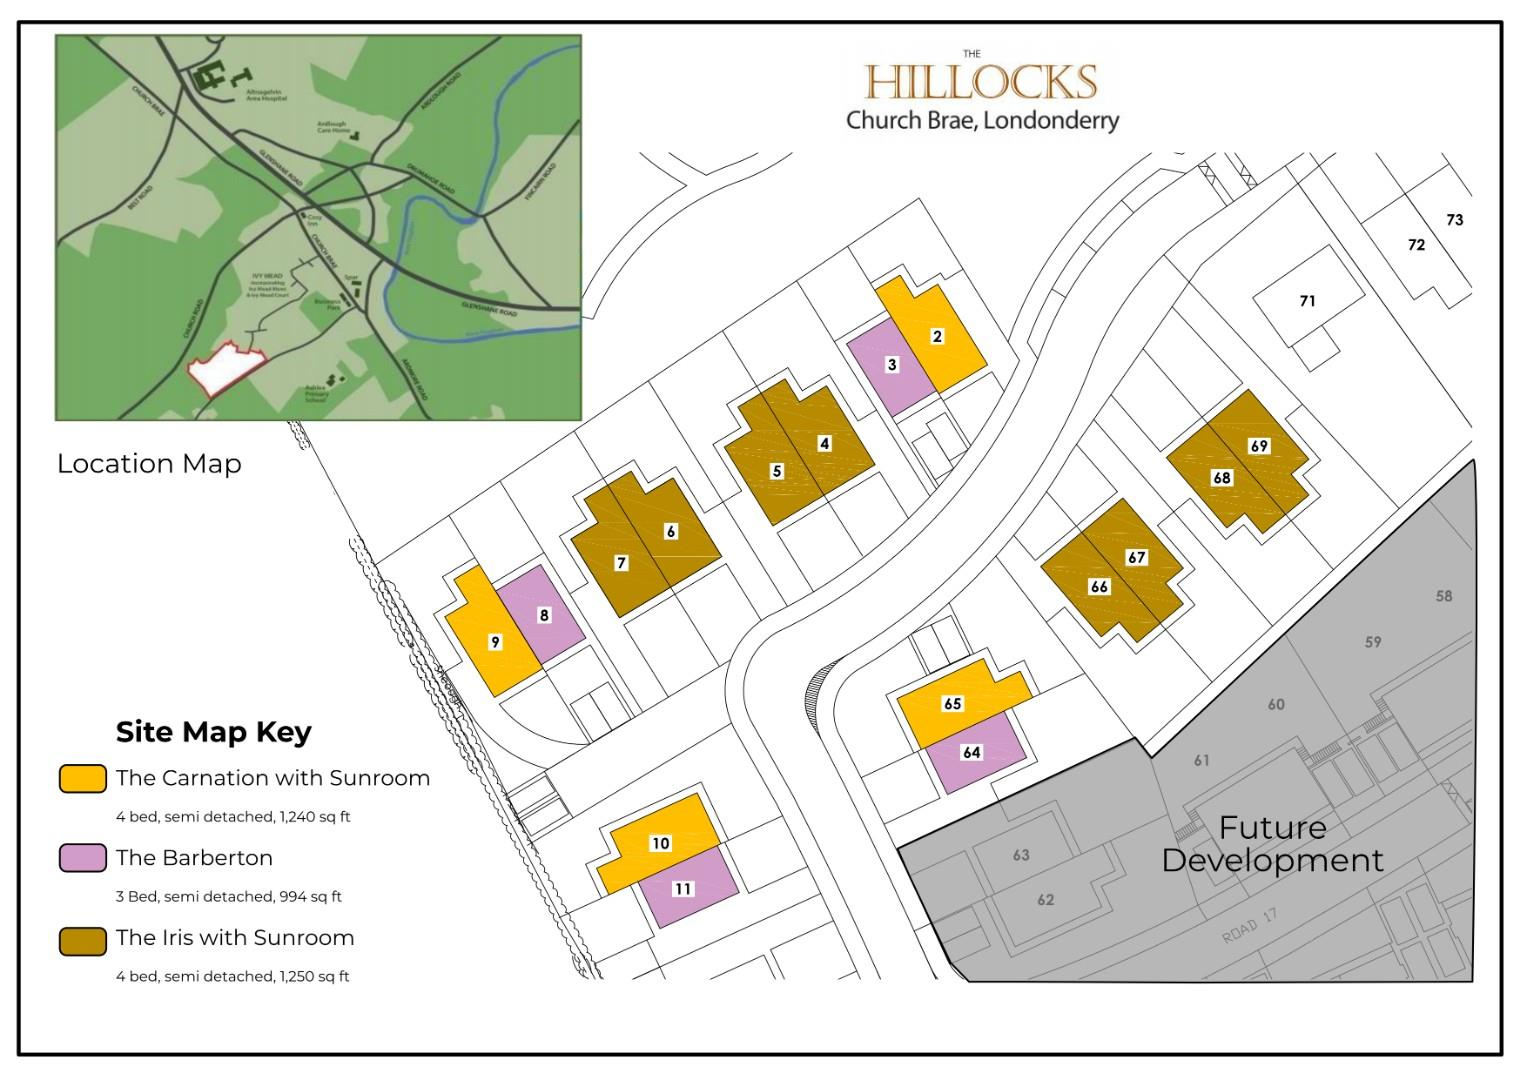 The Hillocks Site Plan 2020.jpg